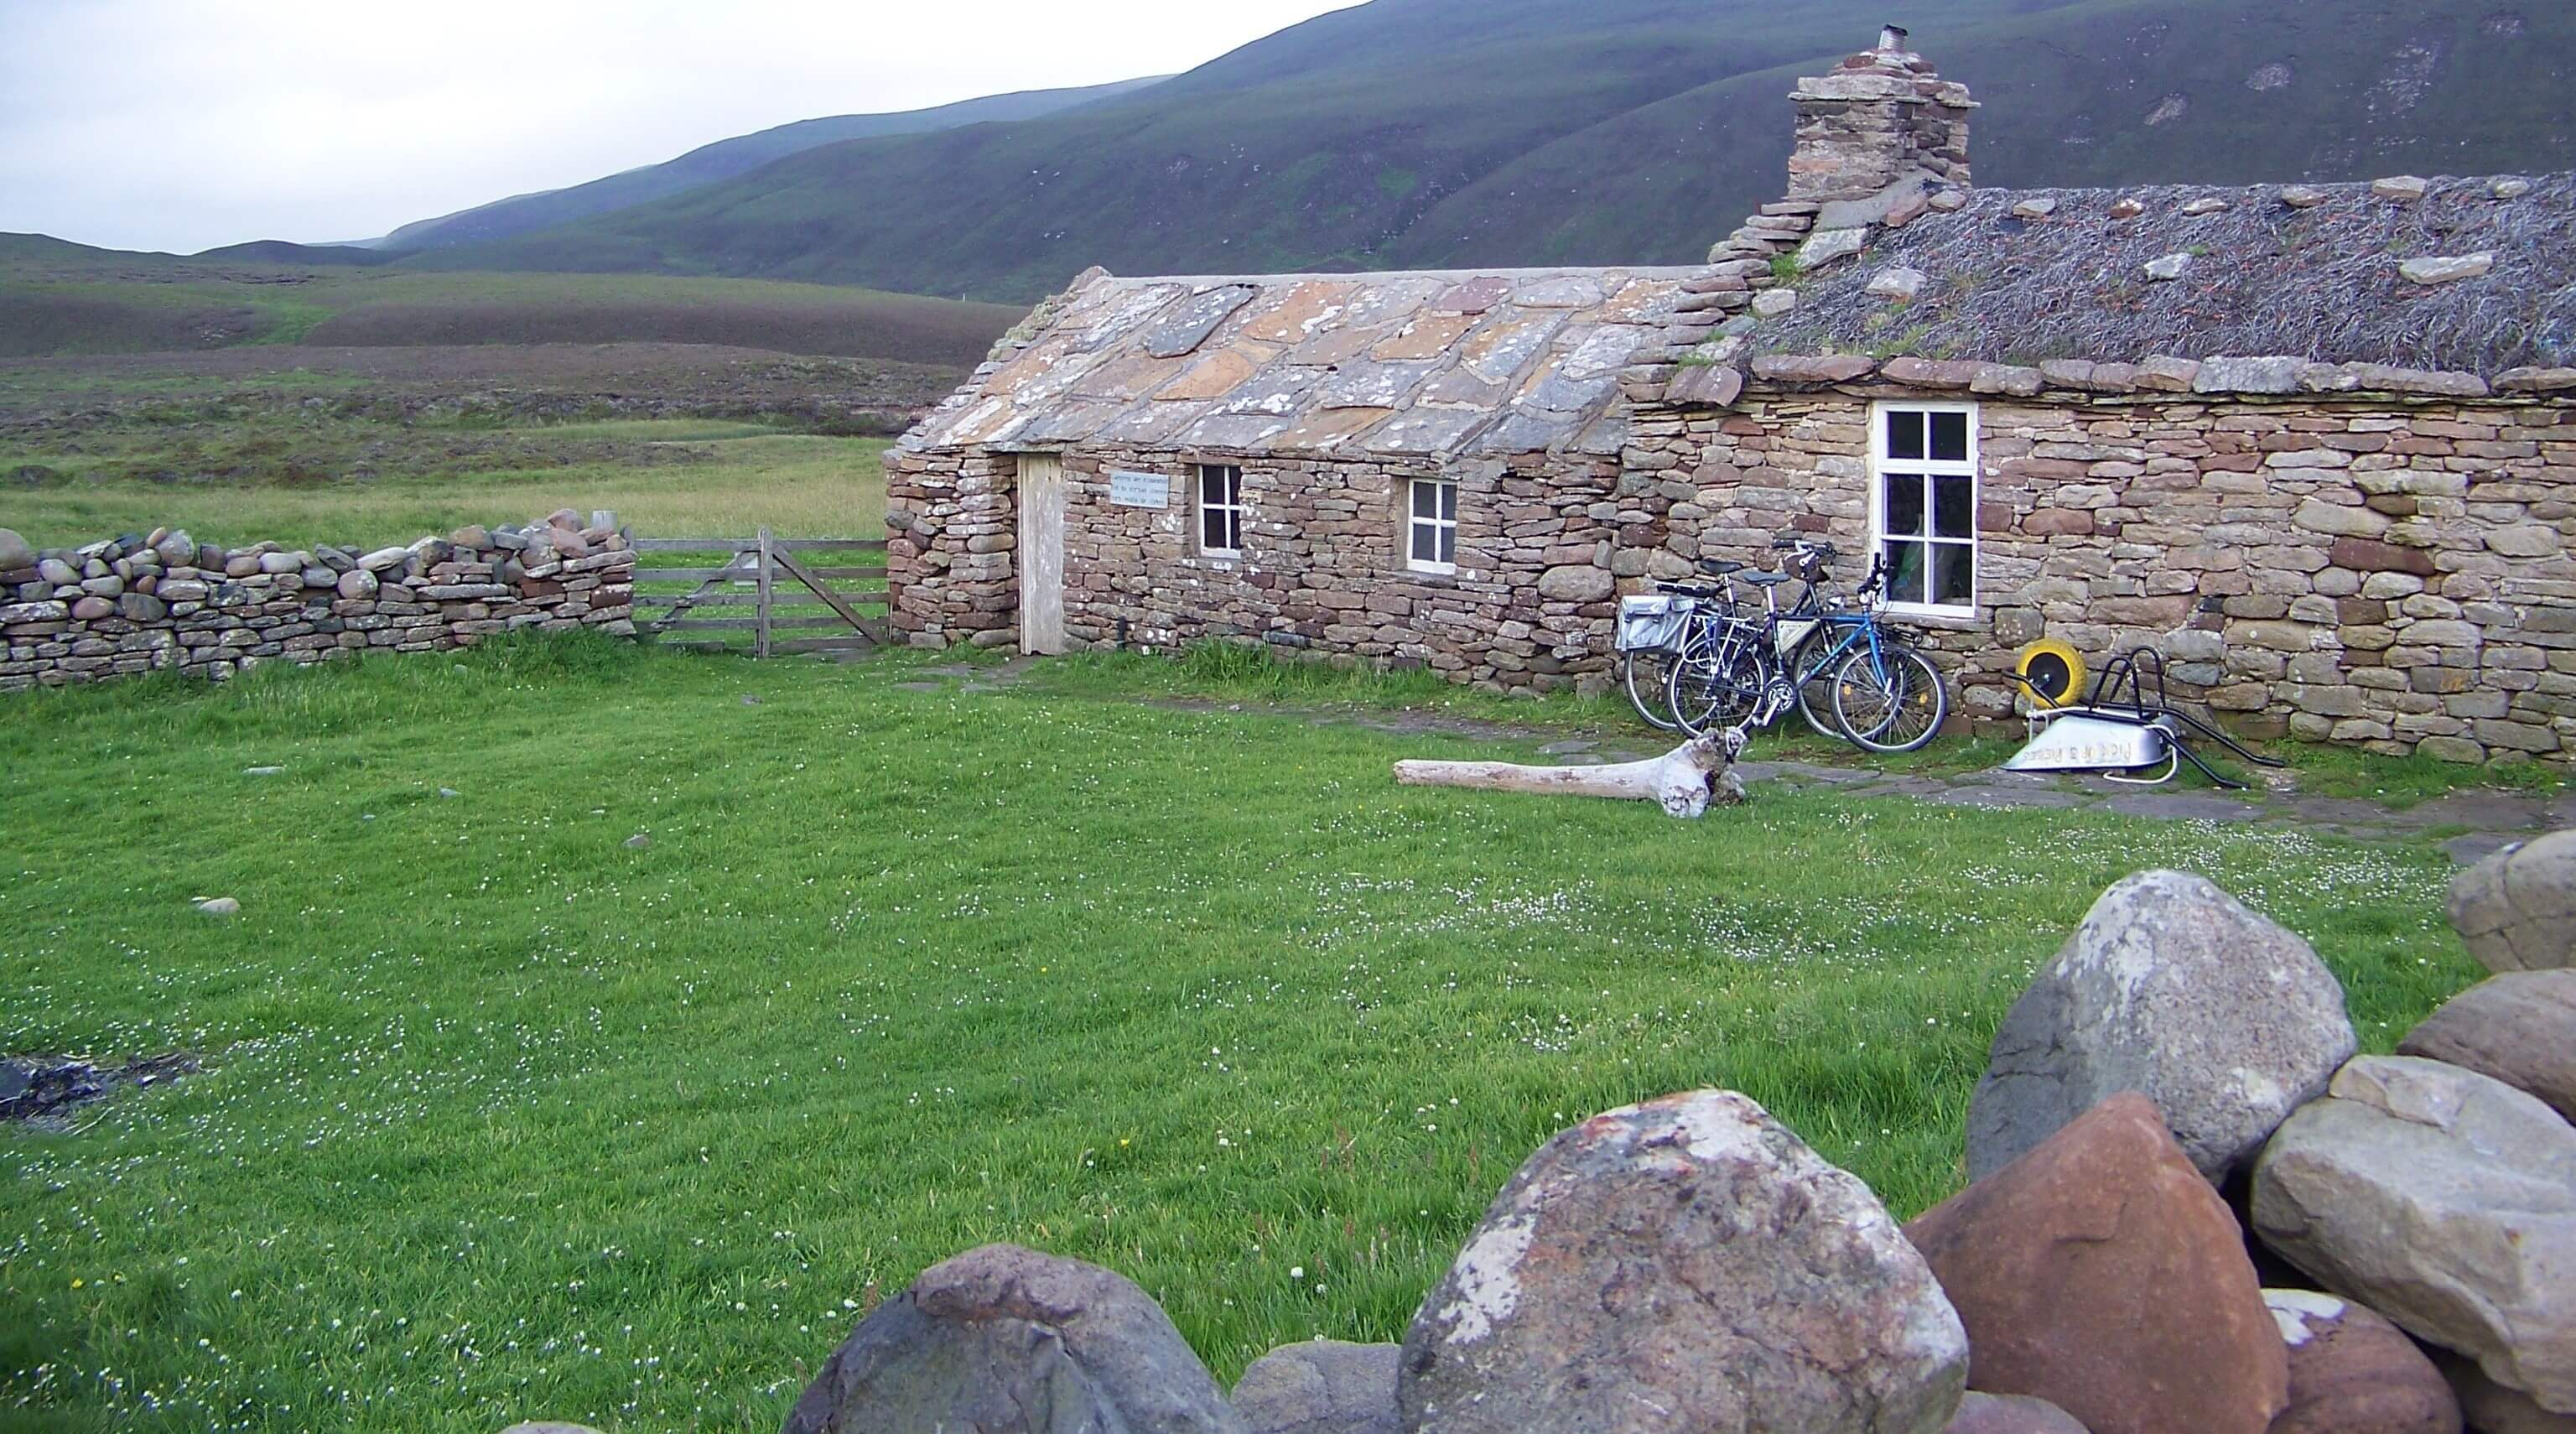 Visitors' bicycles outside the bothy - Hoy, Orkney